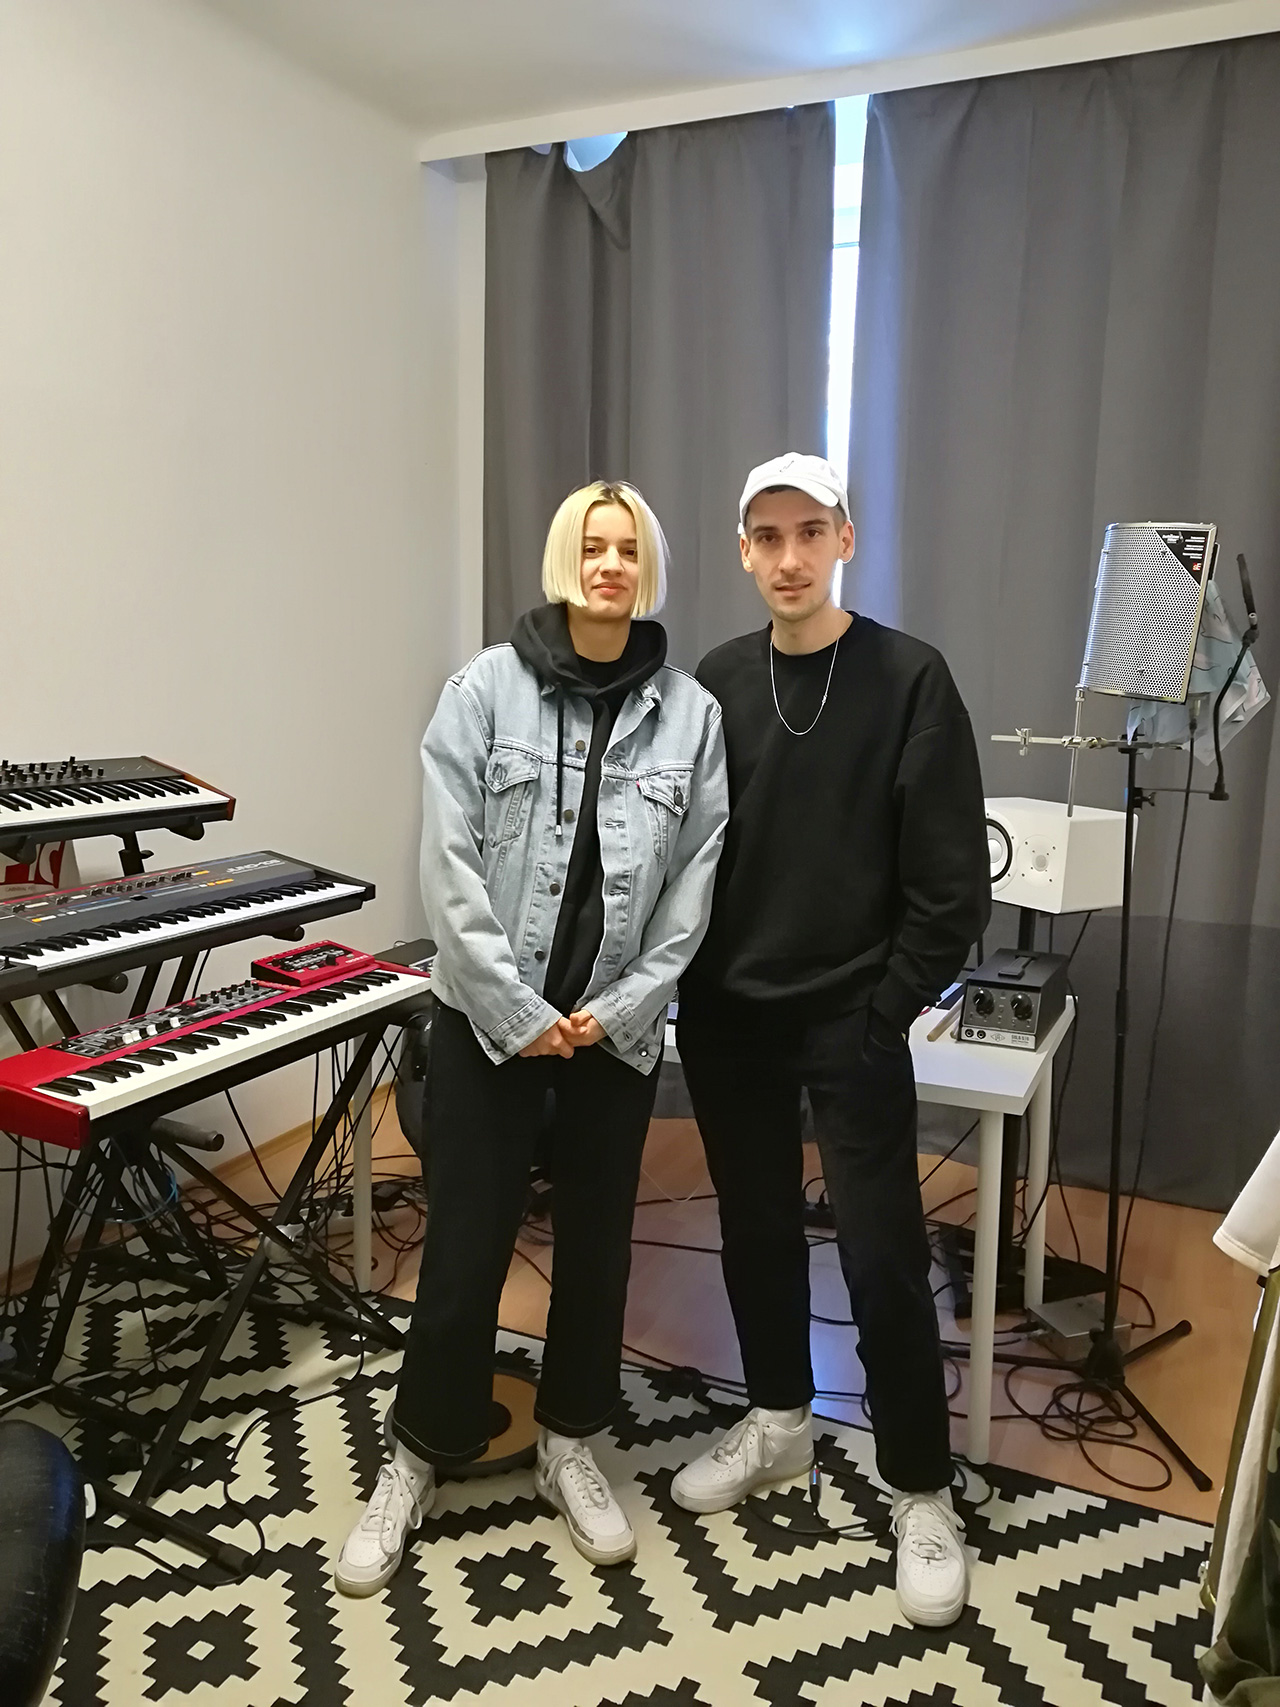 Mavi Phoenix und Alex The Flipper in ihrem Studio